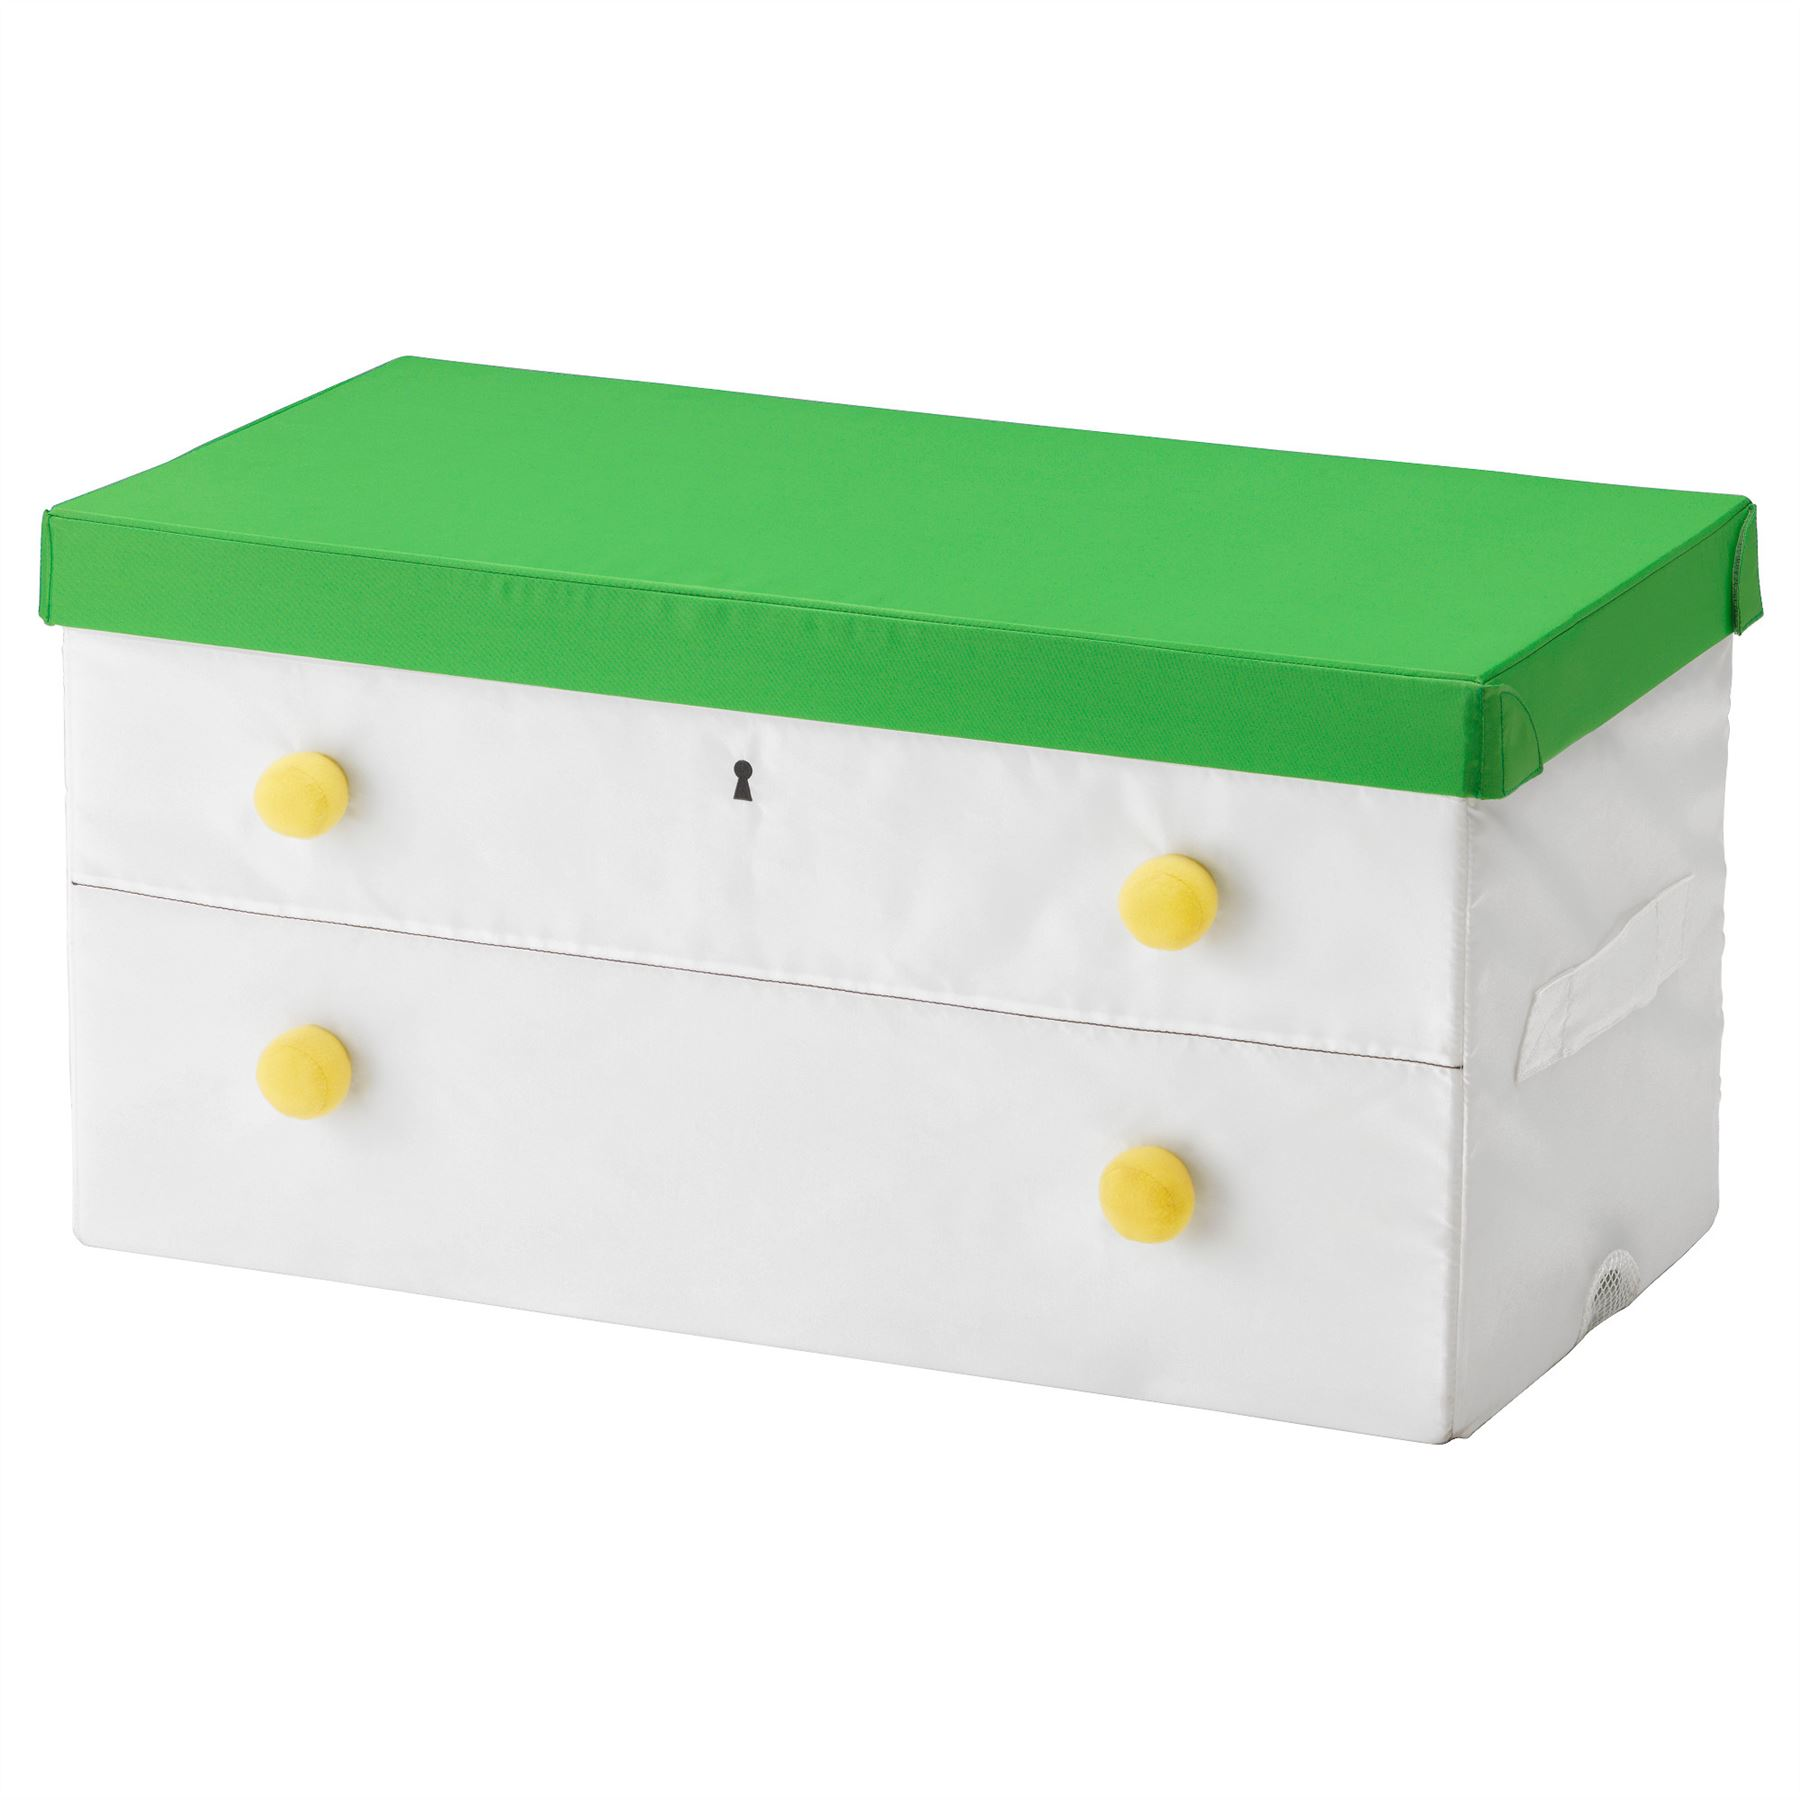 Storage Chest Ikea Details About Ikea Flyttbar Chest Storage Solutions Laundry Toy Basket Kids Trunk Green